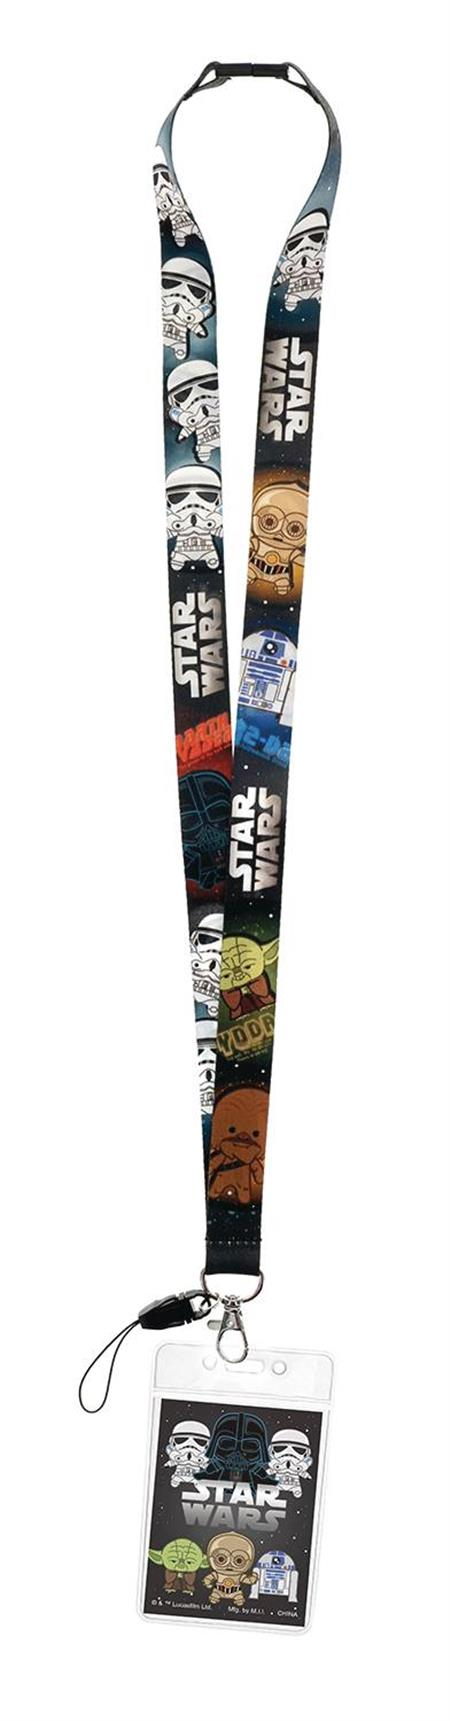 STAR WARS KAWAII CAST LANYARD (C: 1-1-2)